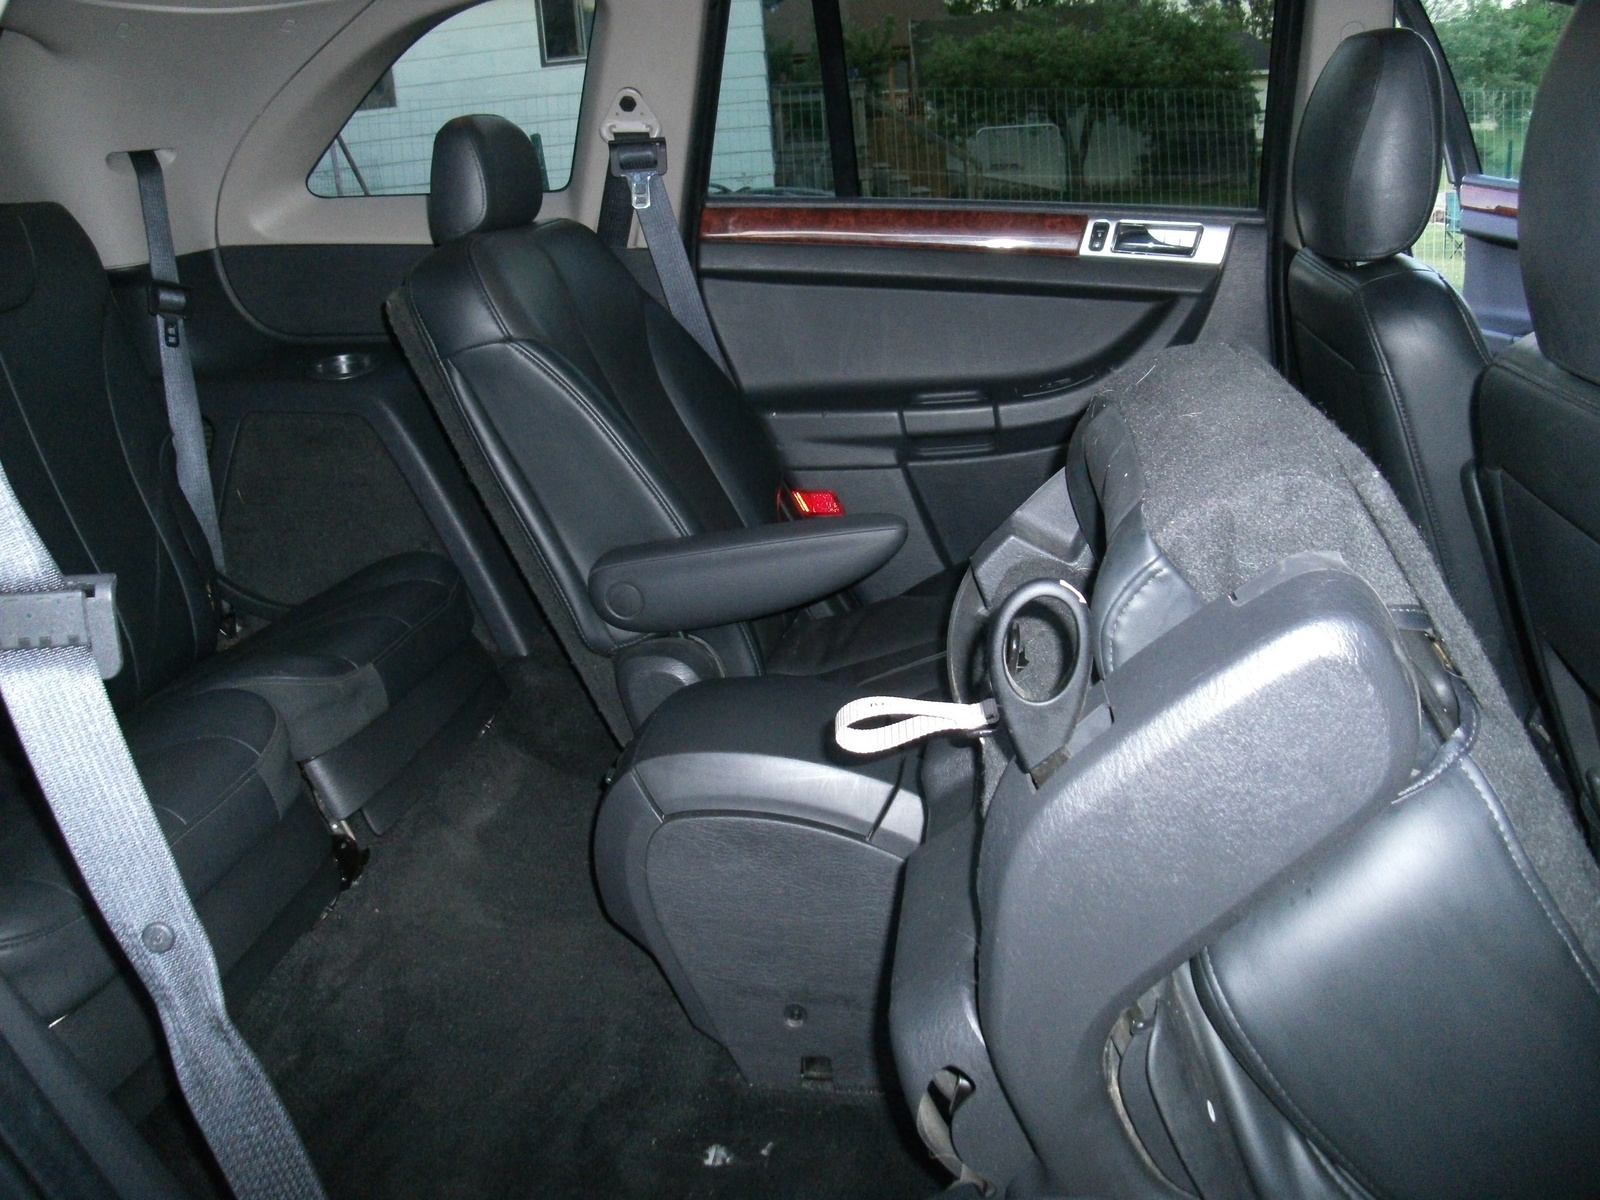 New And Used Chrysler Pt Cruiser For Sale The Car Connection Sexy Girl And Car Photos